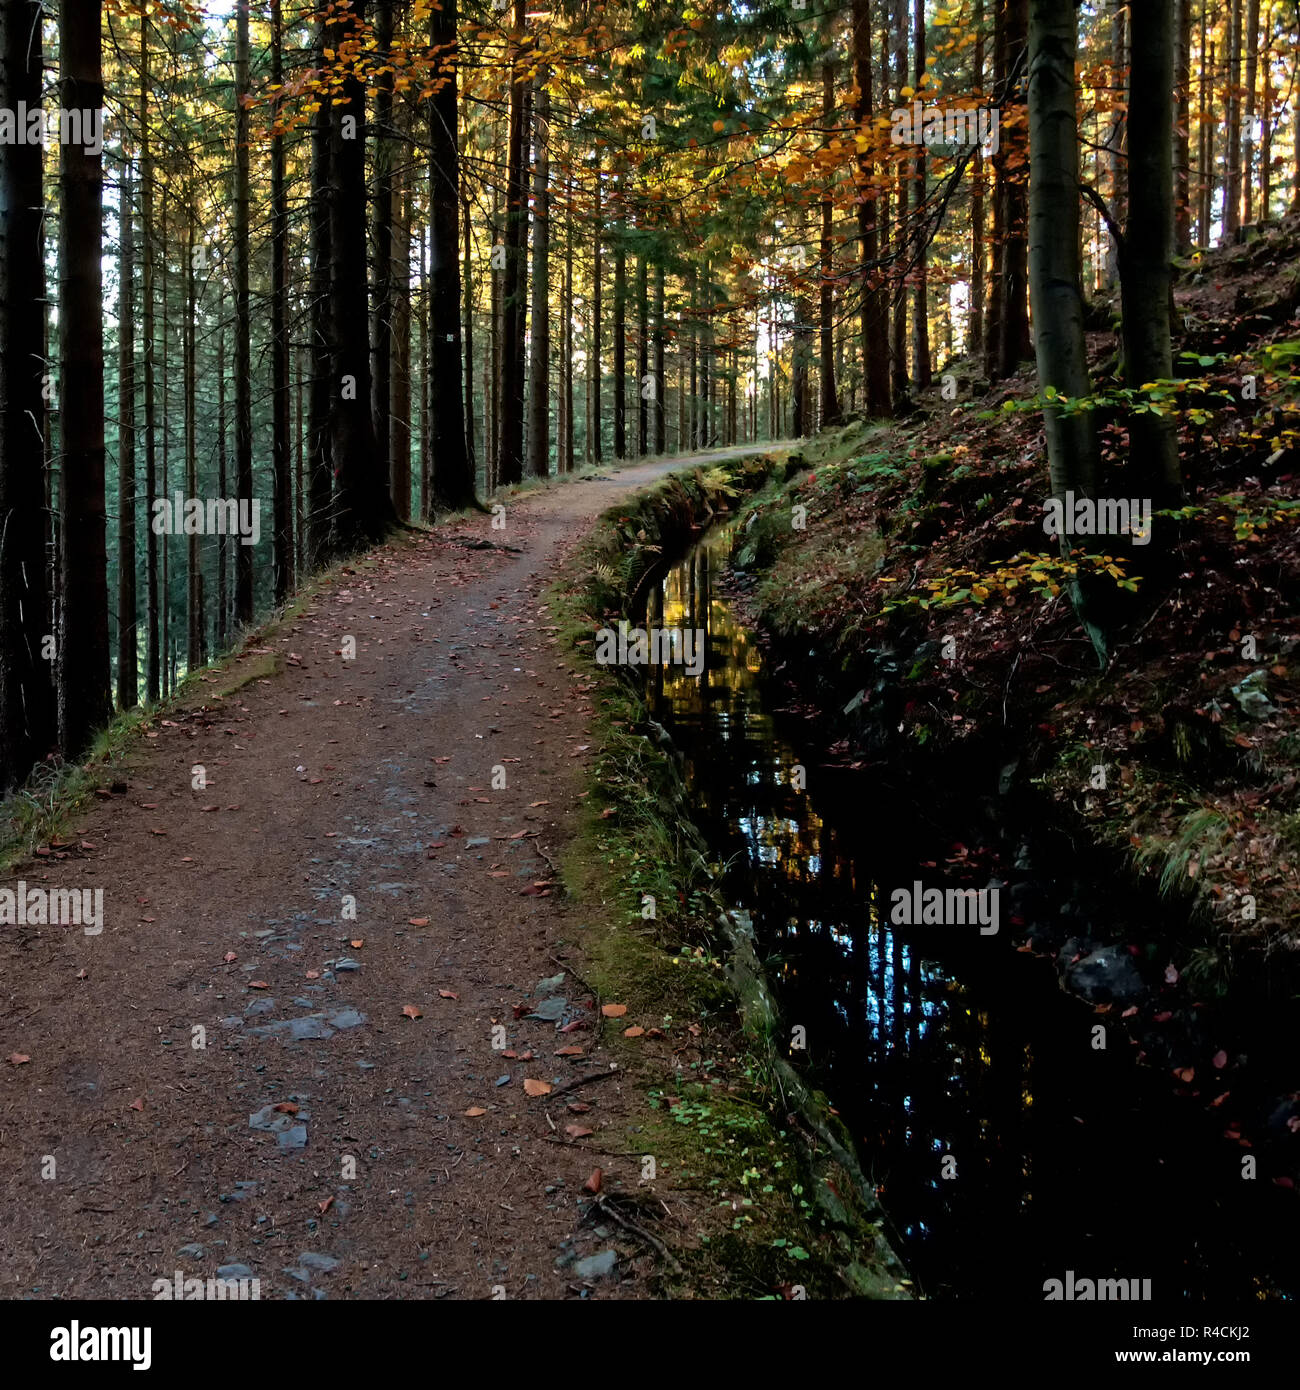 Hiking trail in the forest of the Harz mountains - Stock Image